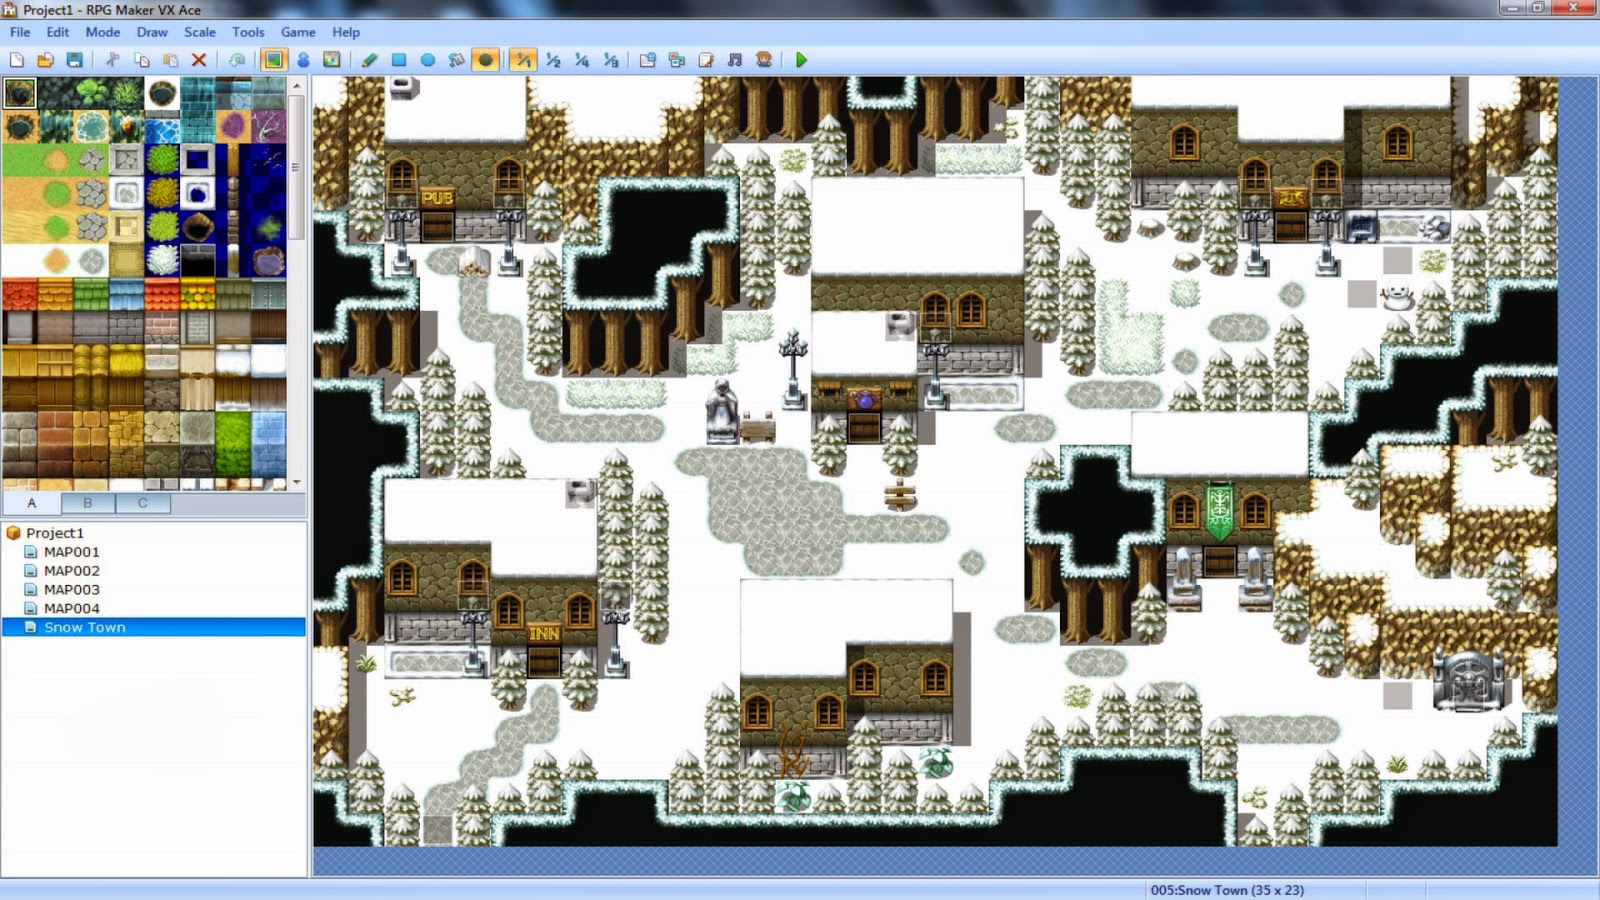 tutorial rpg maker vx ace crear tipos de mapas programa videojuegos. Black Bedroom Furniture Sets. Home Design Ideas